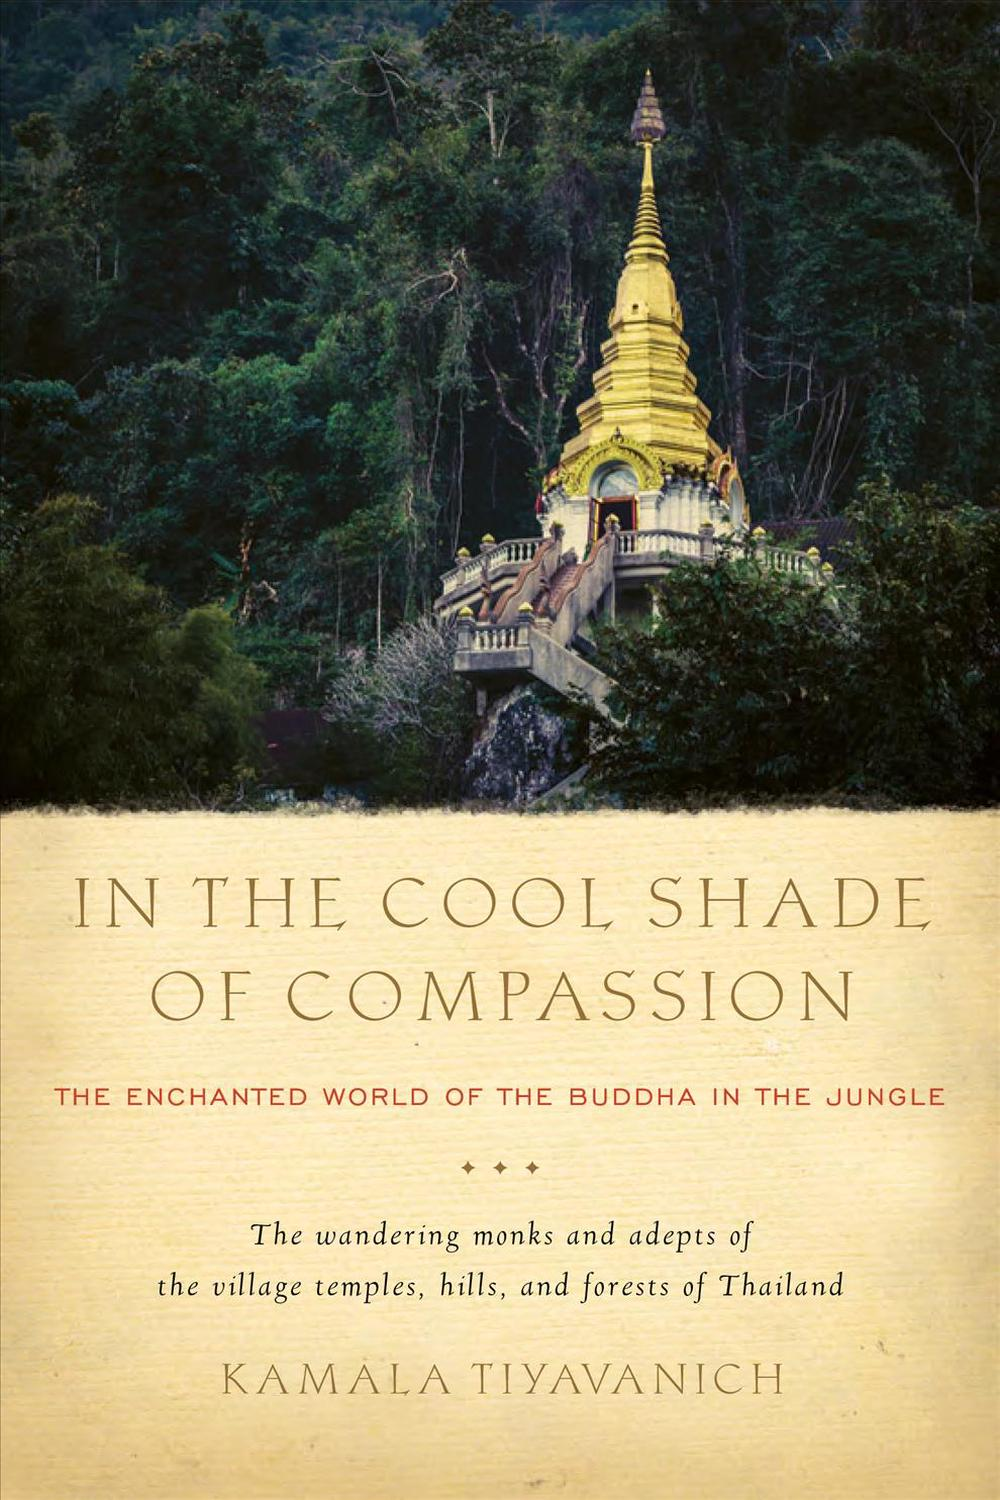 In the Cool Shade of Compassion